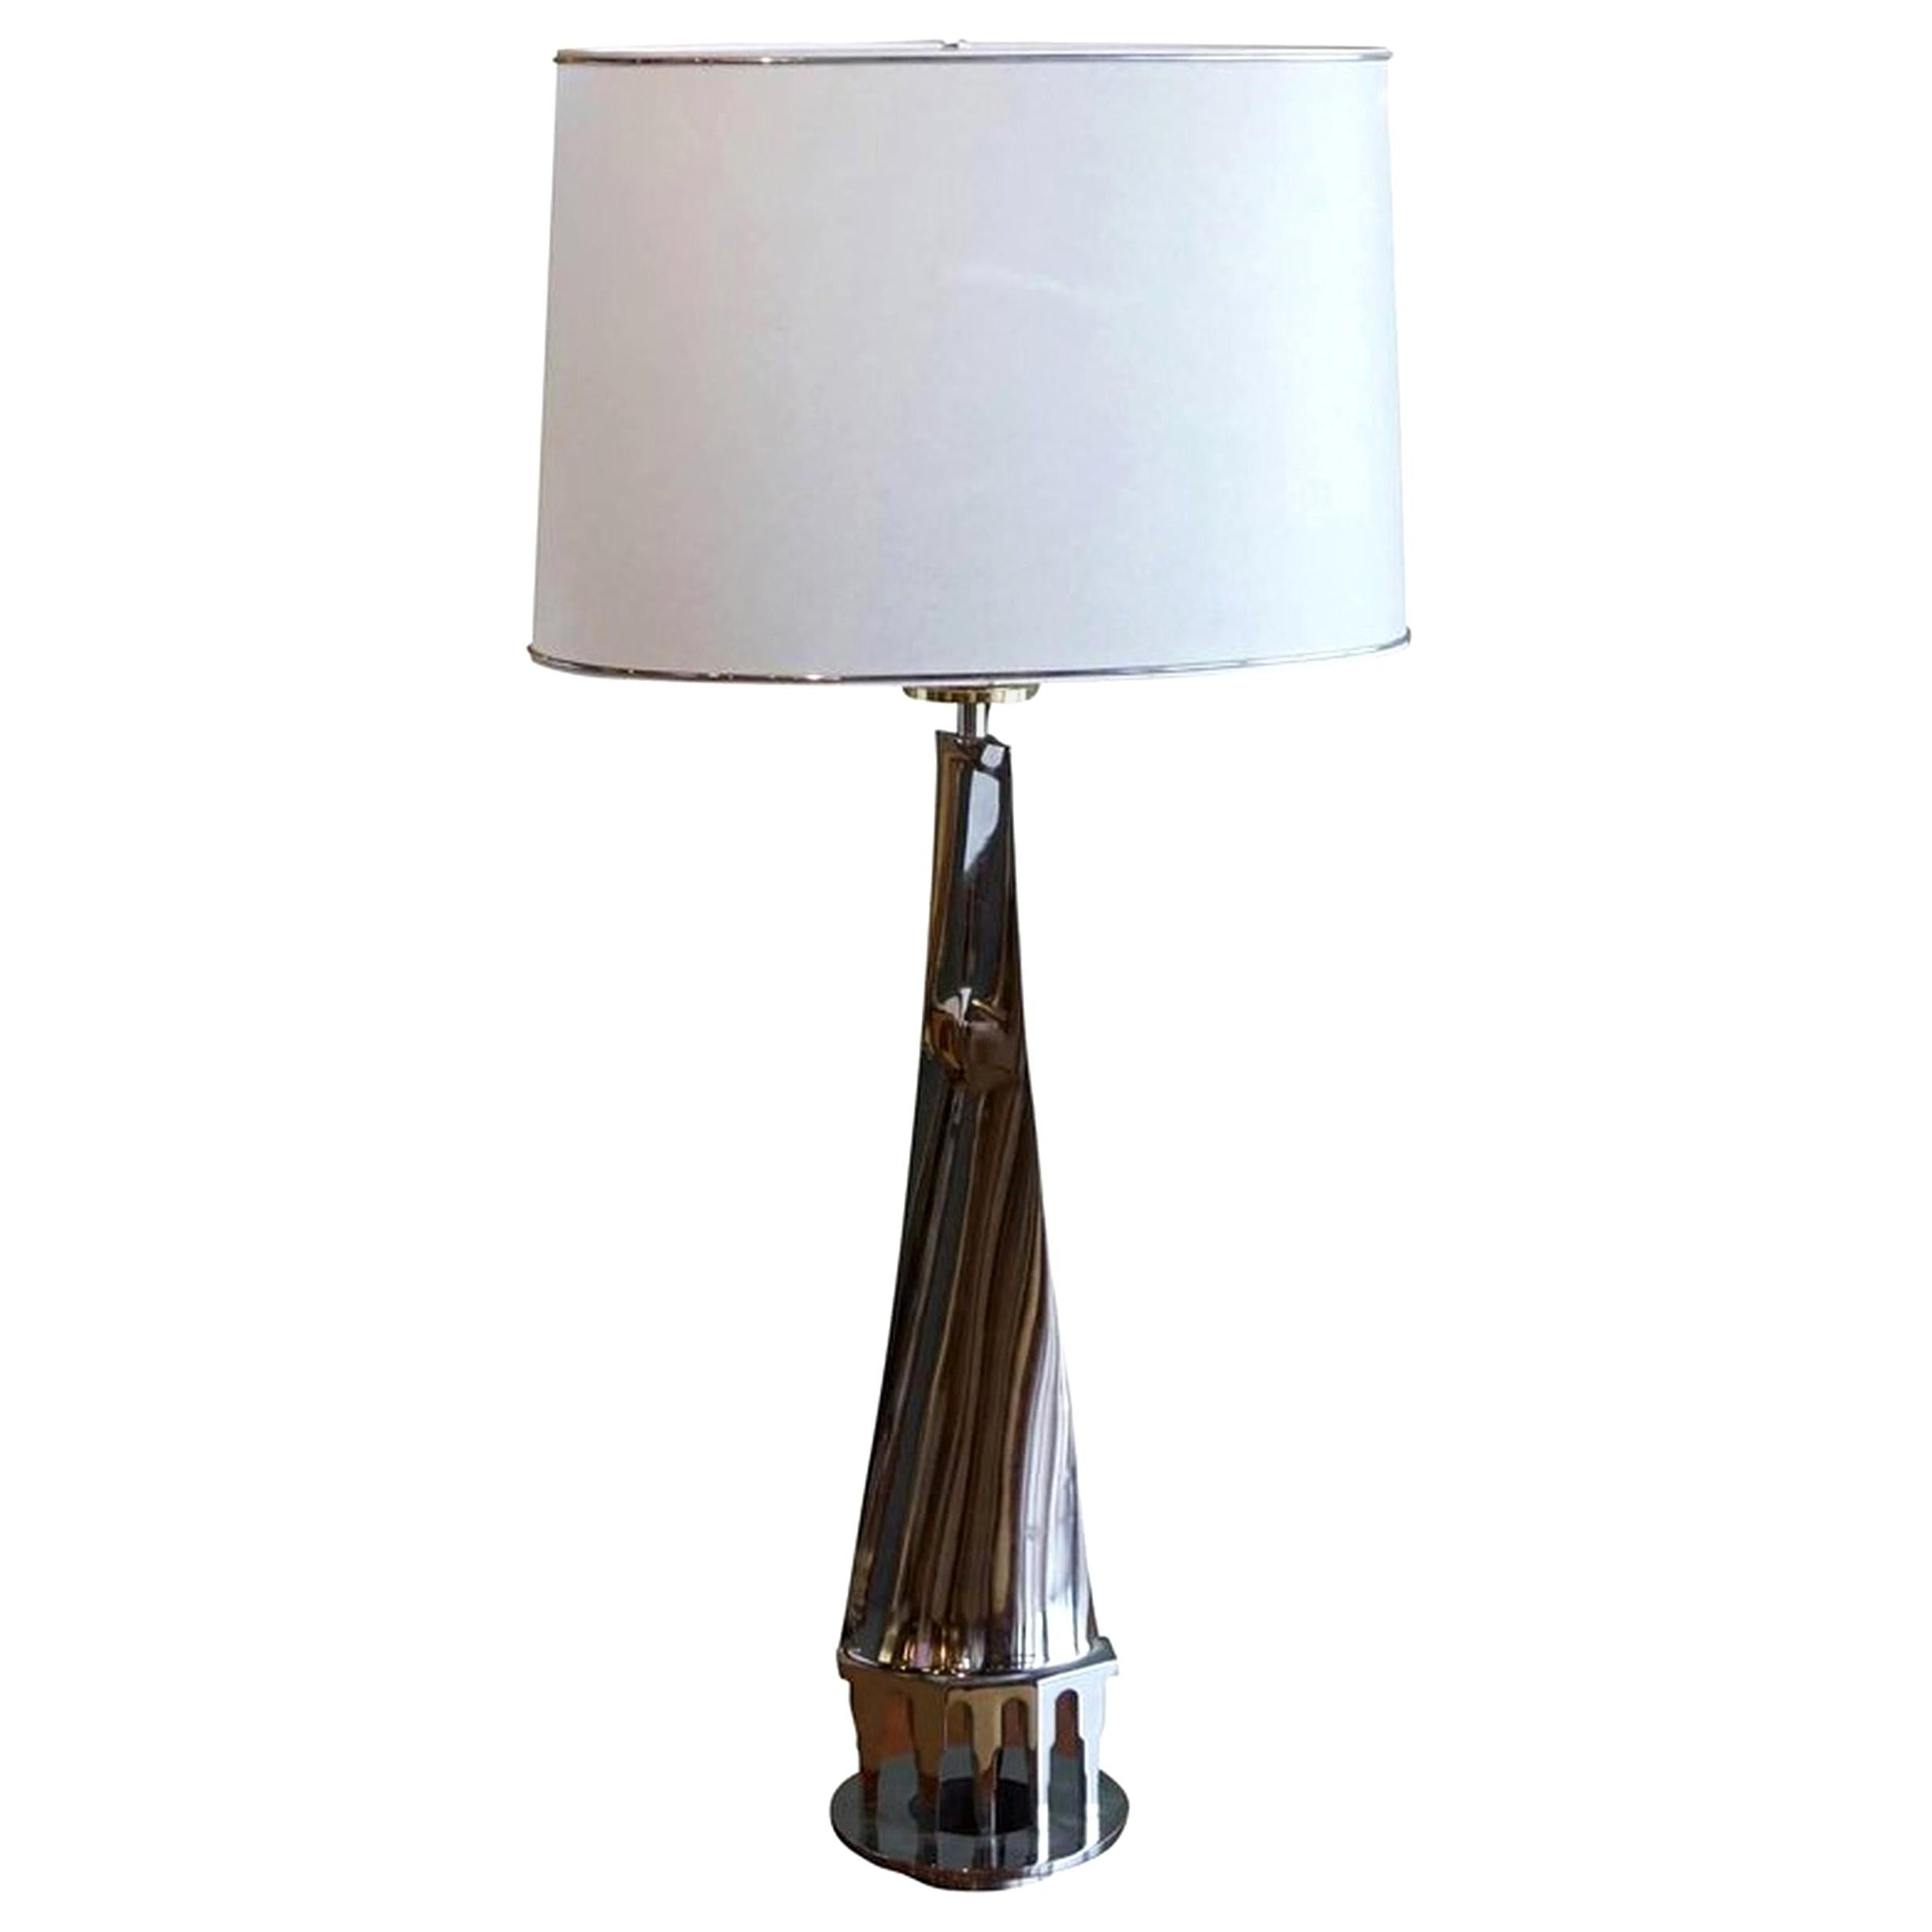 20th Century Silver Italian Florentine Chrome Table Lamp by Banci Firenze